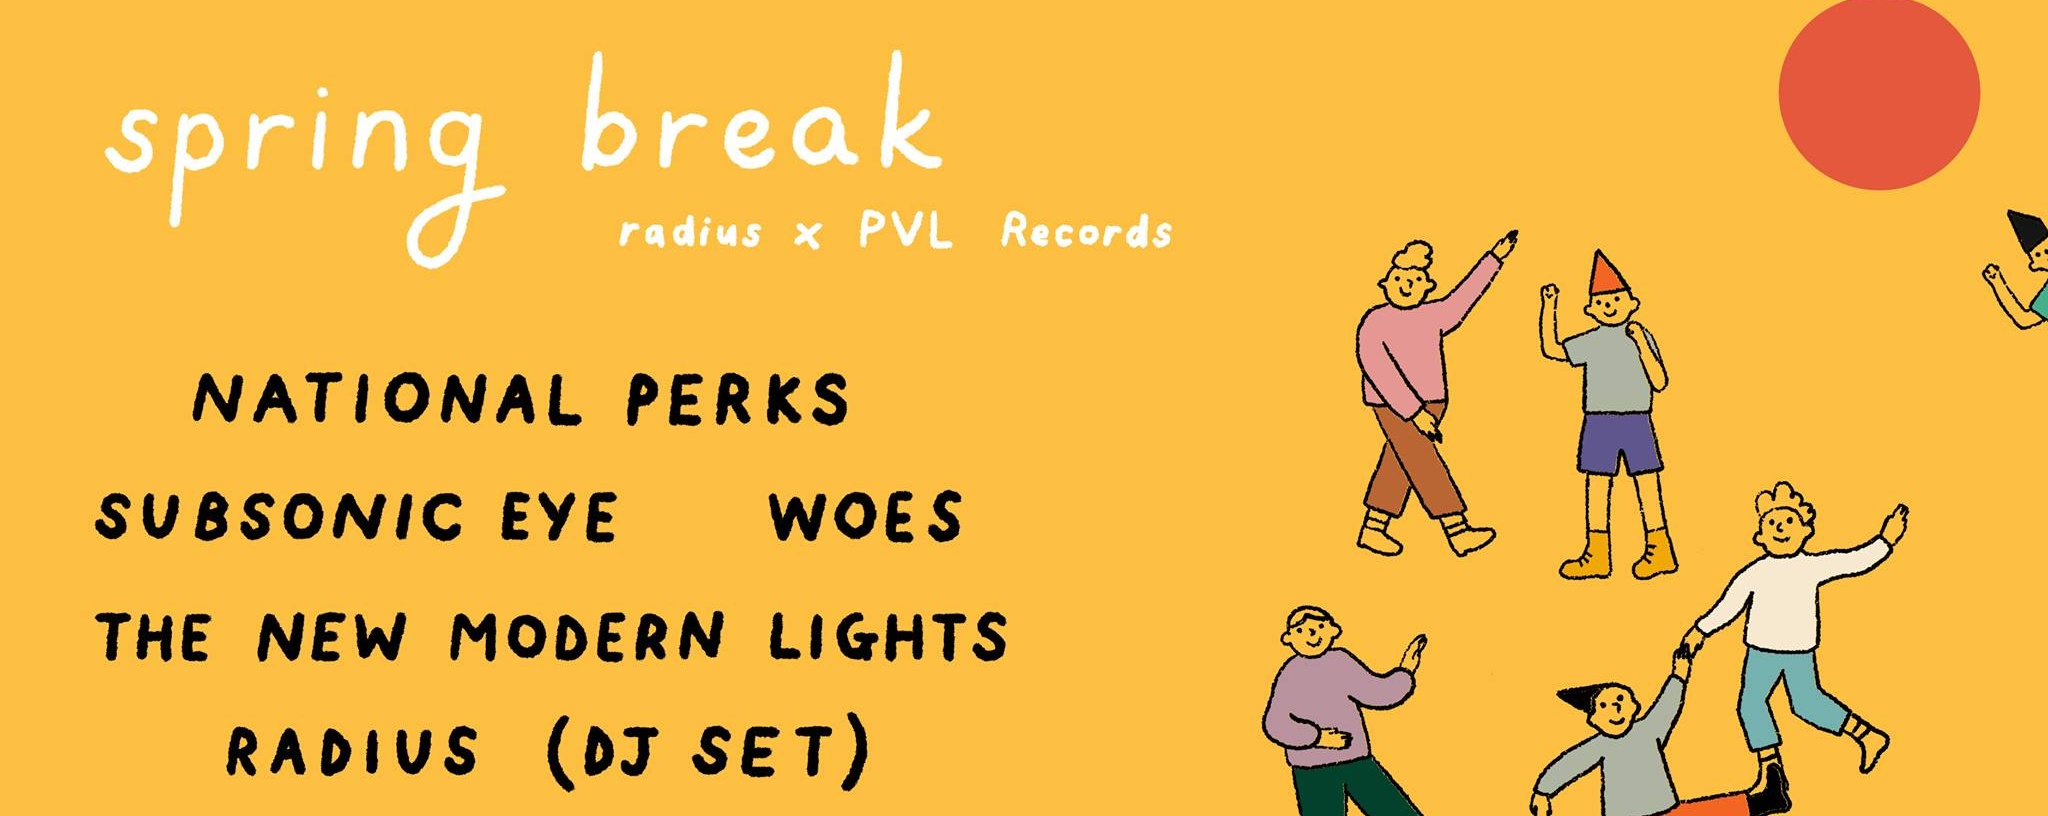 Spring Break (with PVL Records)